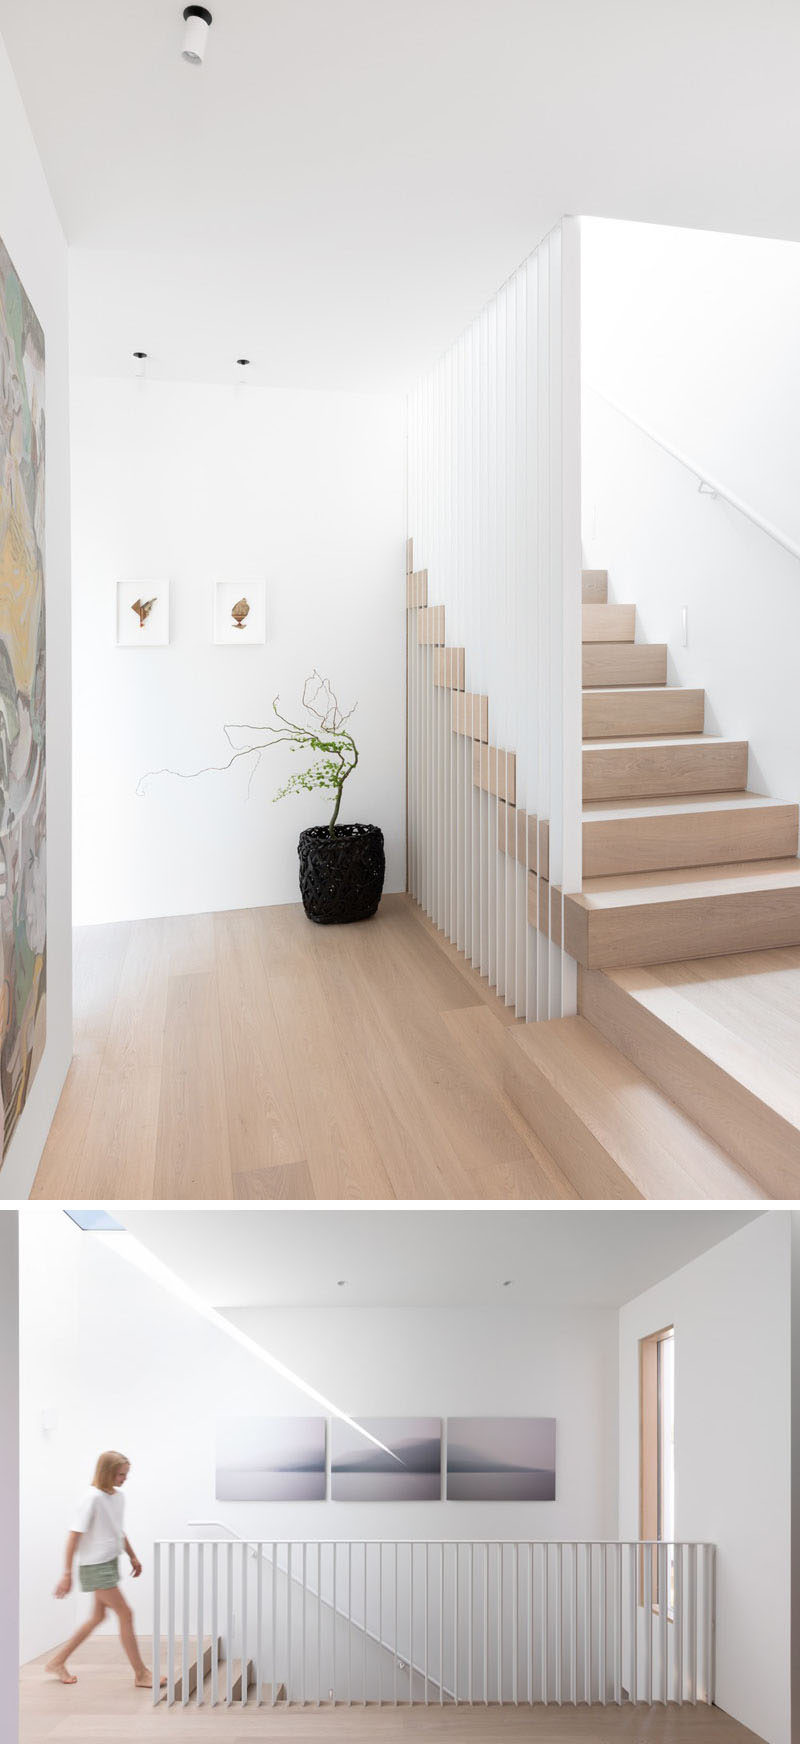 These modern stairs haveslatted steel guards that intersect Nordic Oak treads. At the top of the stairs, there's a skylight that provides natural light to the landing. #ModernStairs #WoodAndWhiteStairs